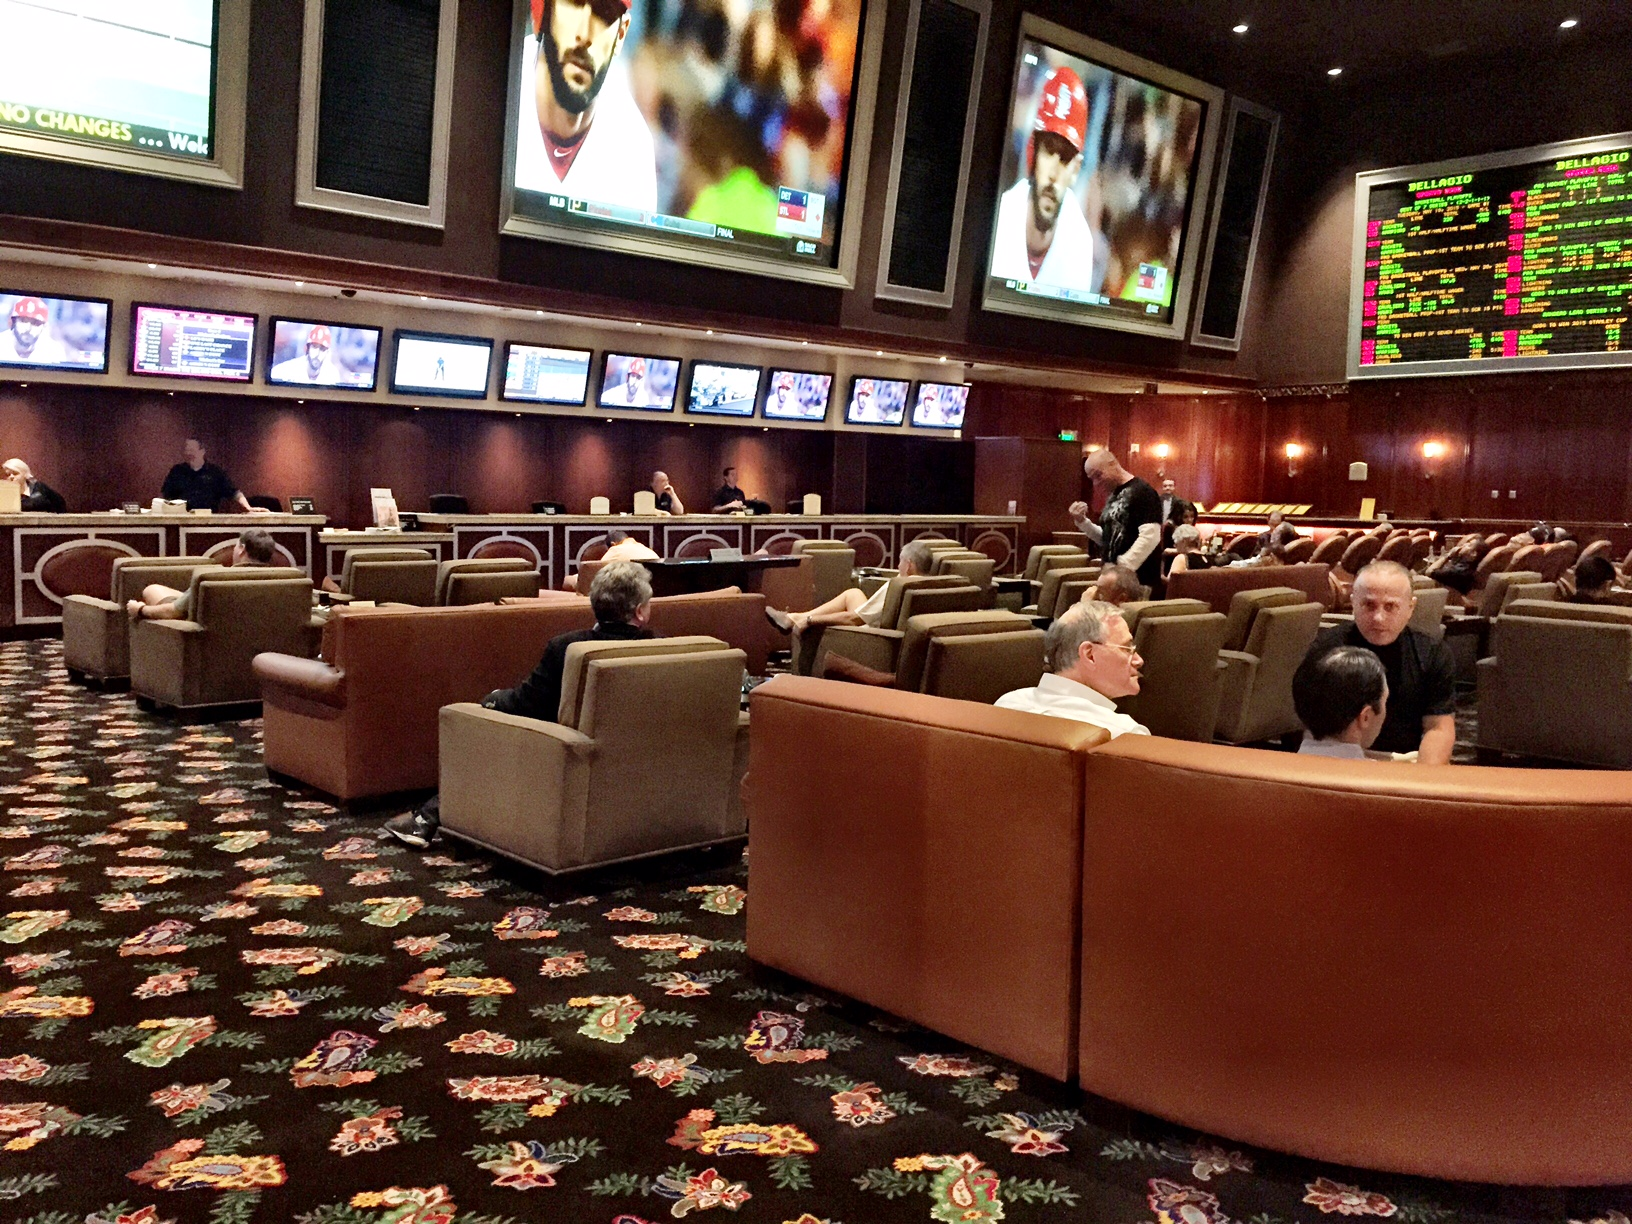 Las Vegas Sports Book News  Daily Fantasy Betting on its Way  The Vegas Parlay